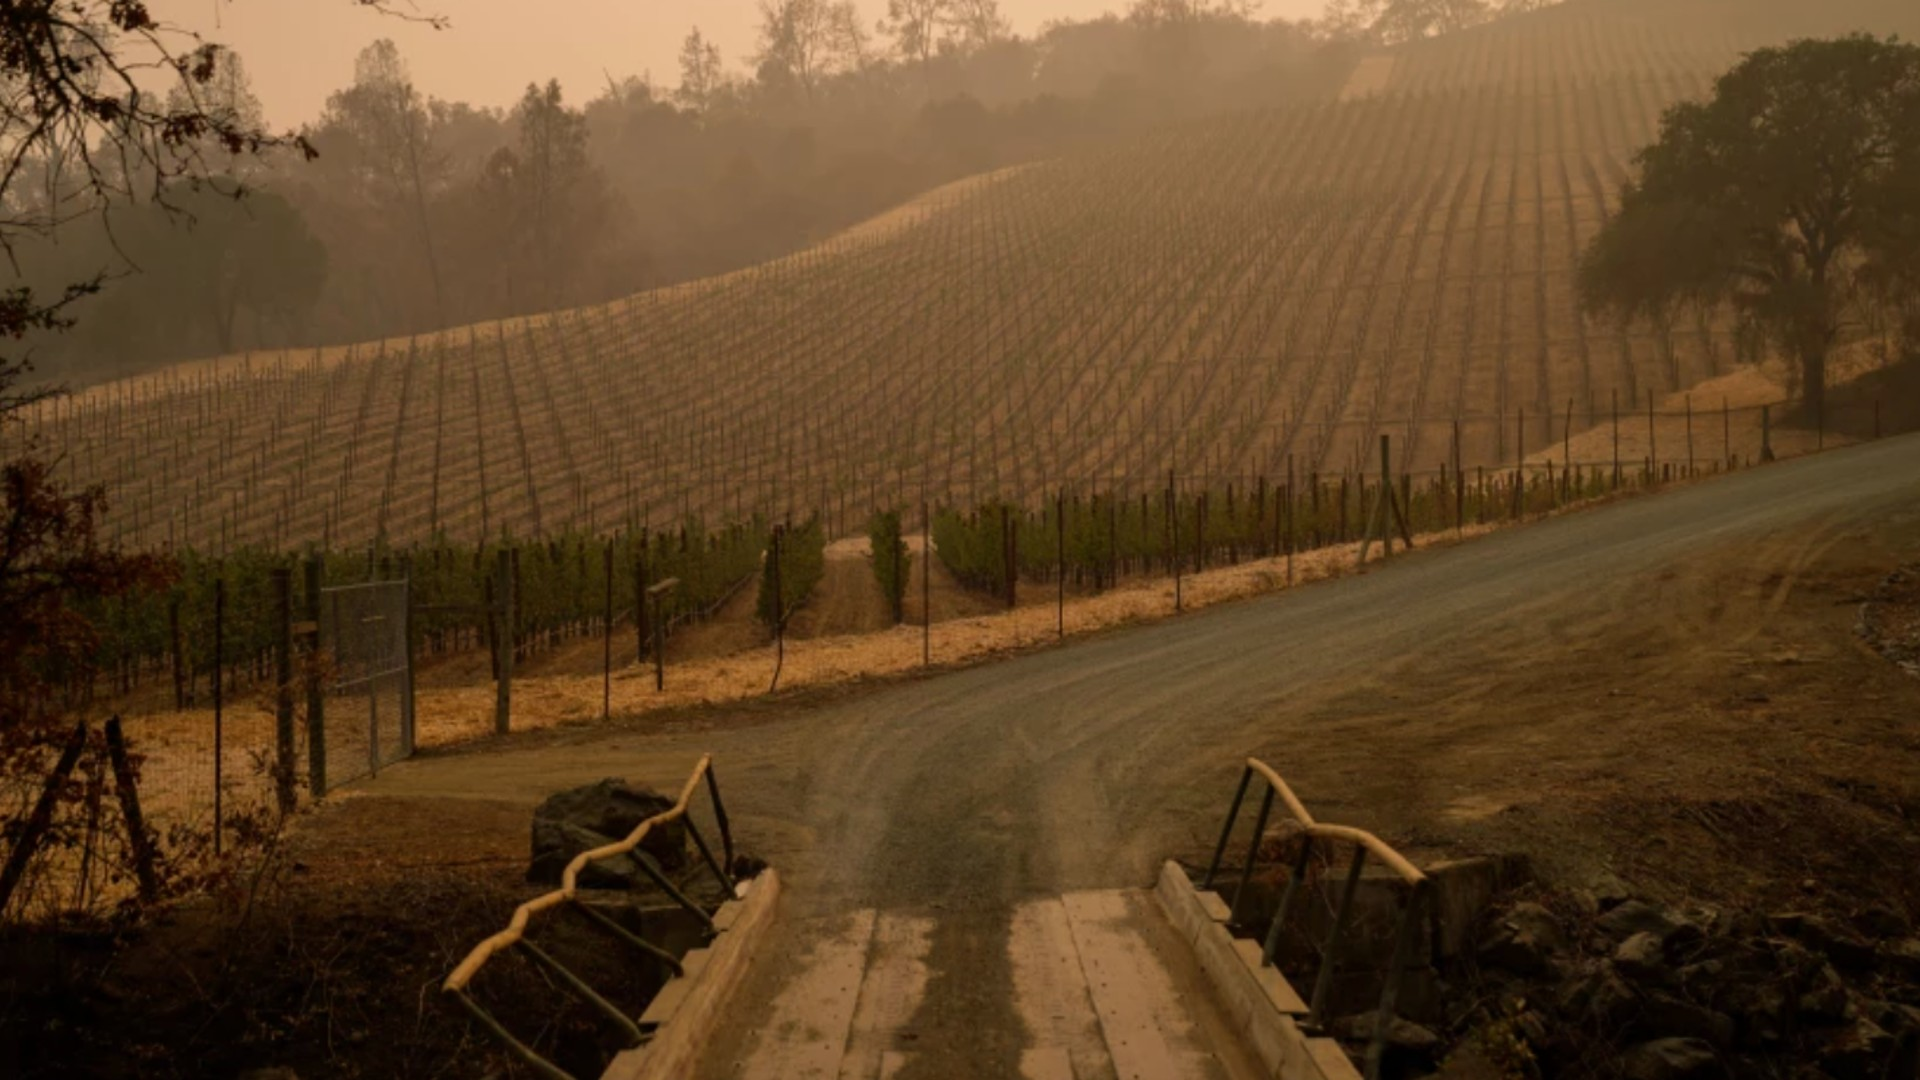 Somerston Estate Winery & Vineyards in St. Helena Calif., seen above on Sept. 30, 2020, was among the many wineries that did not produce a 2020 vintage due to the wildfire season.(Kent Nishimura / Los Angeles Times)